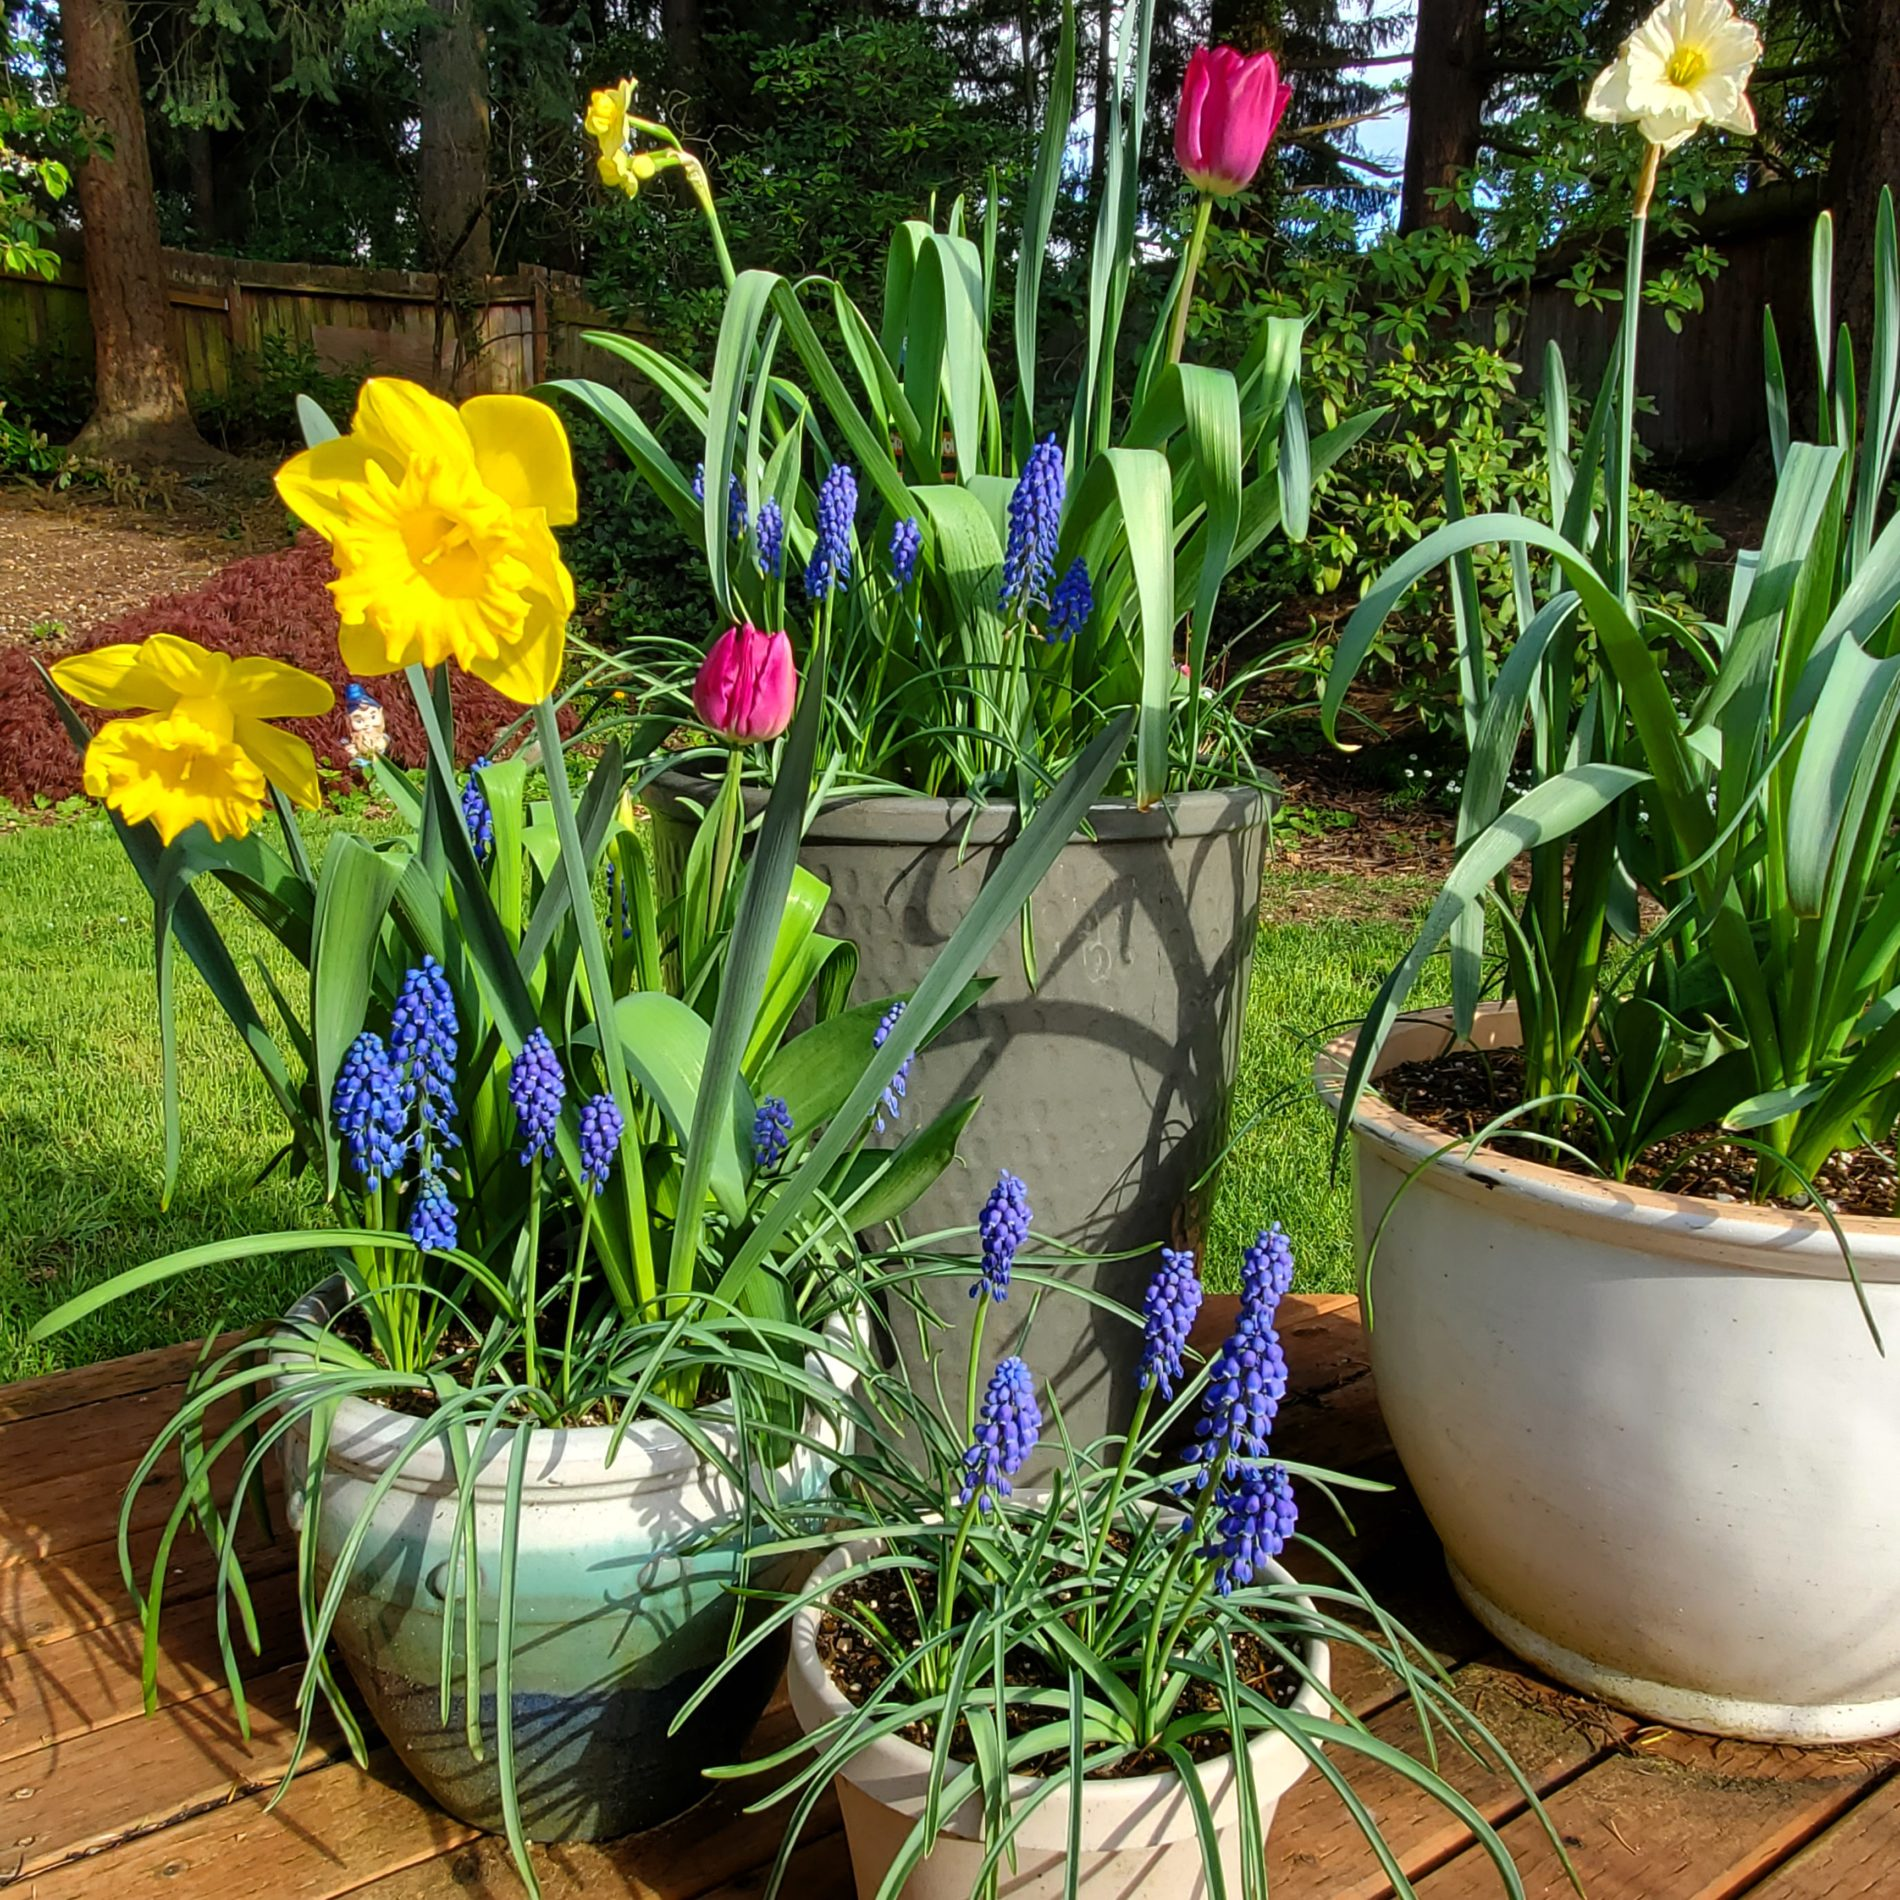 Potted daffodils, hyacinth, and tulips on a deck at home.